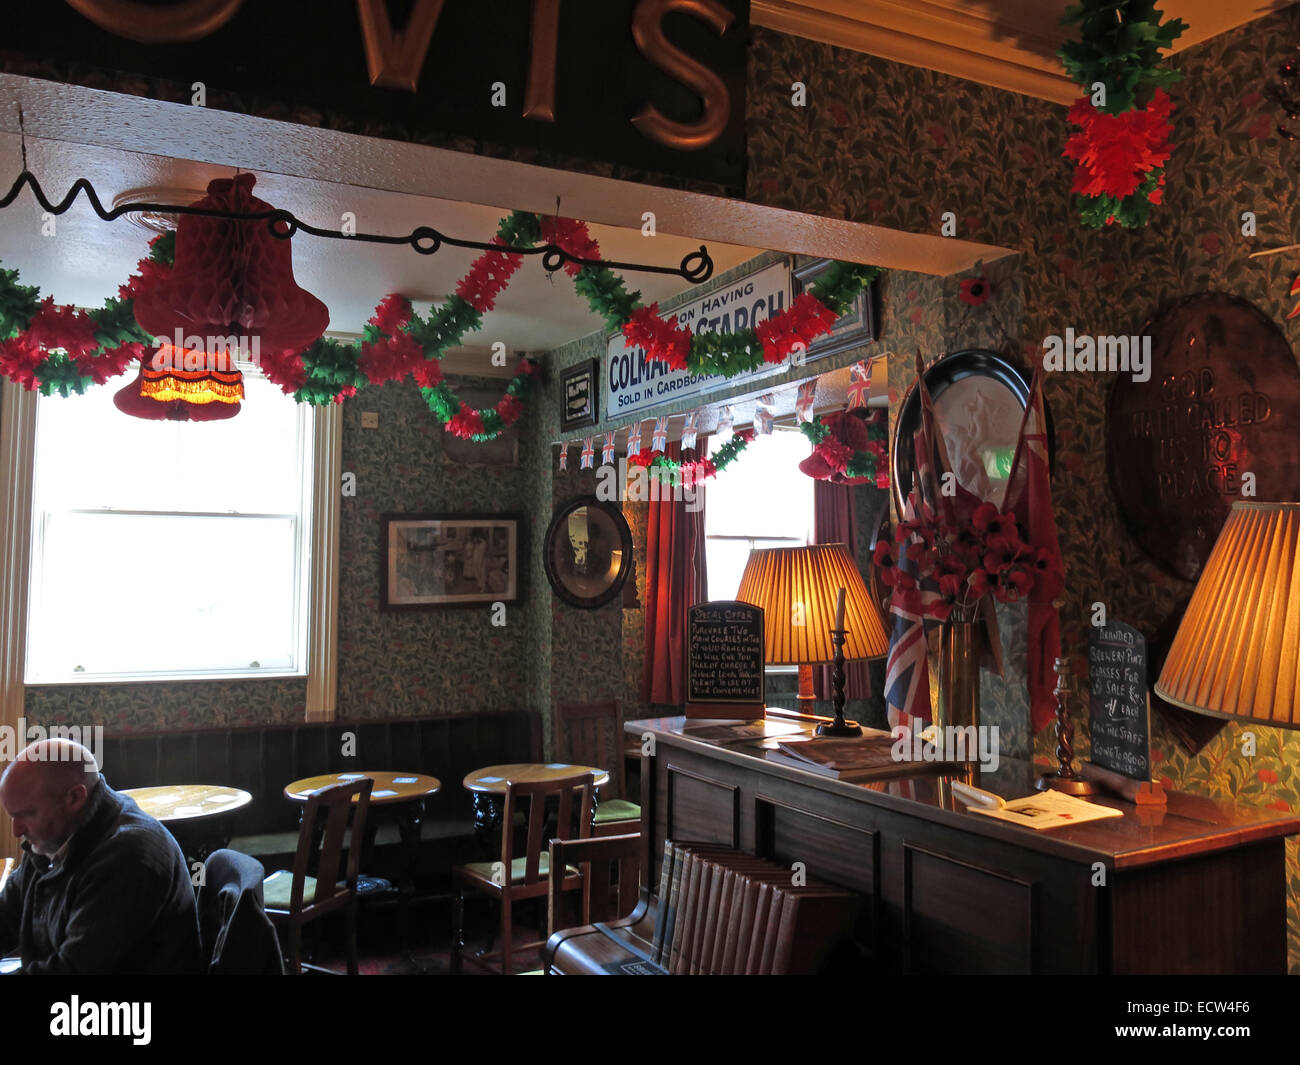 The Albion Inn, old fashioned, classic English Pub in Chester, England,UK - Stock Image